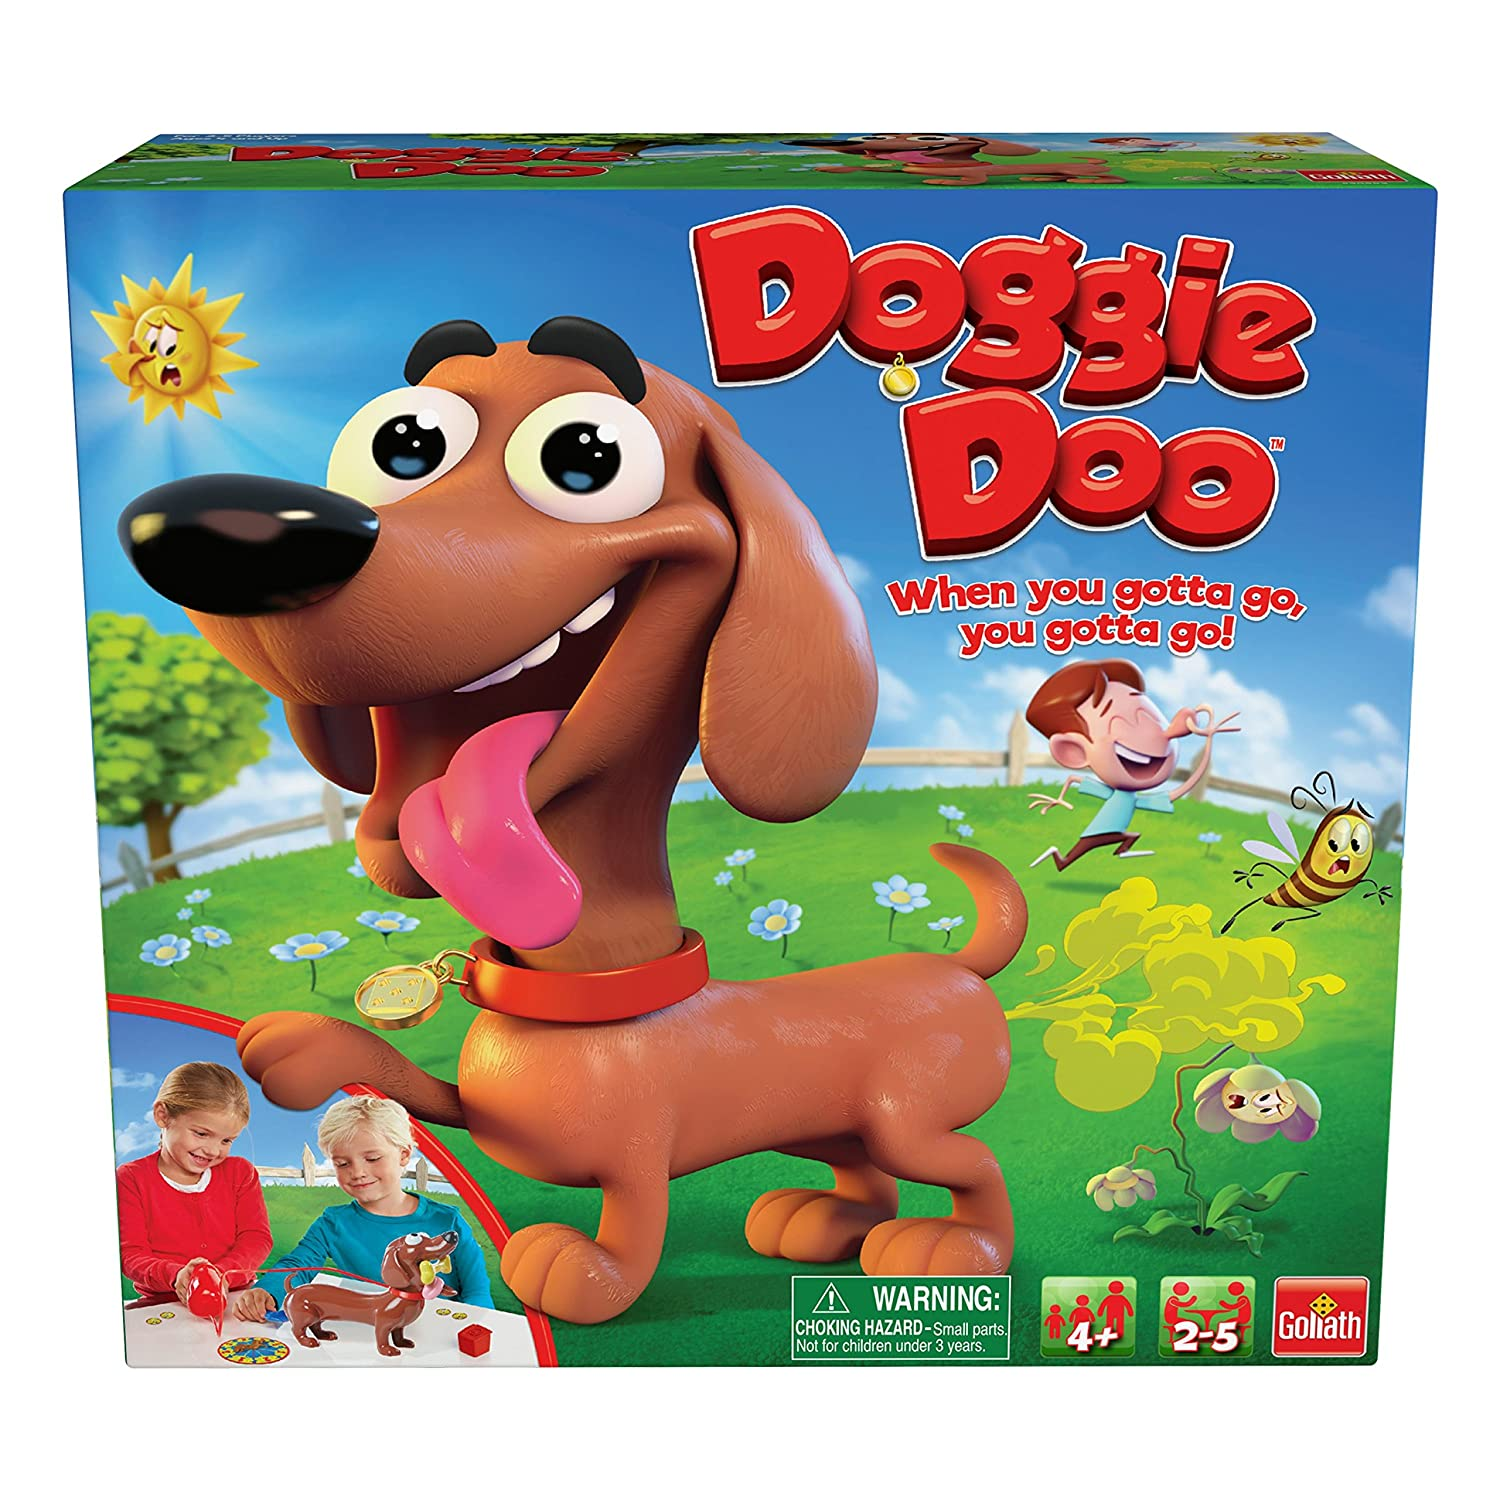 Goliath Games 30683 Goliath New and Improved Doggie Doo Game, Brown